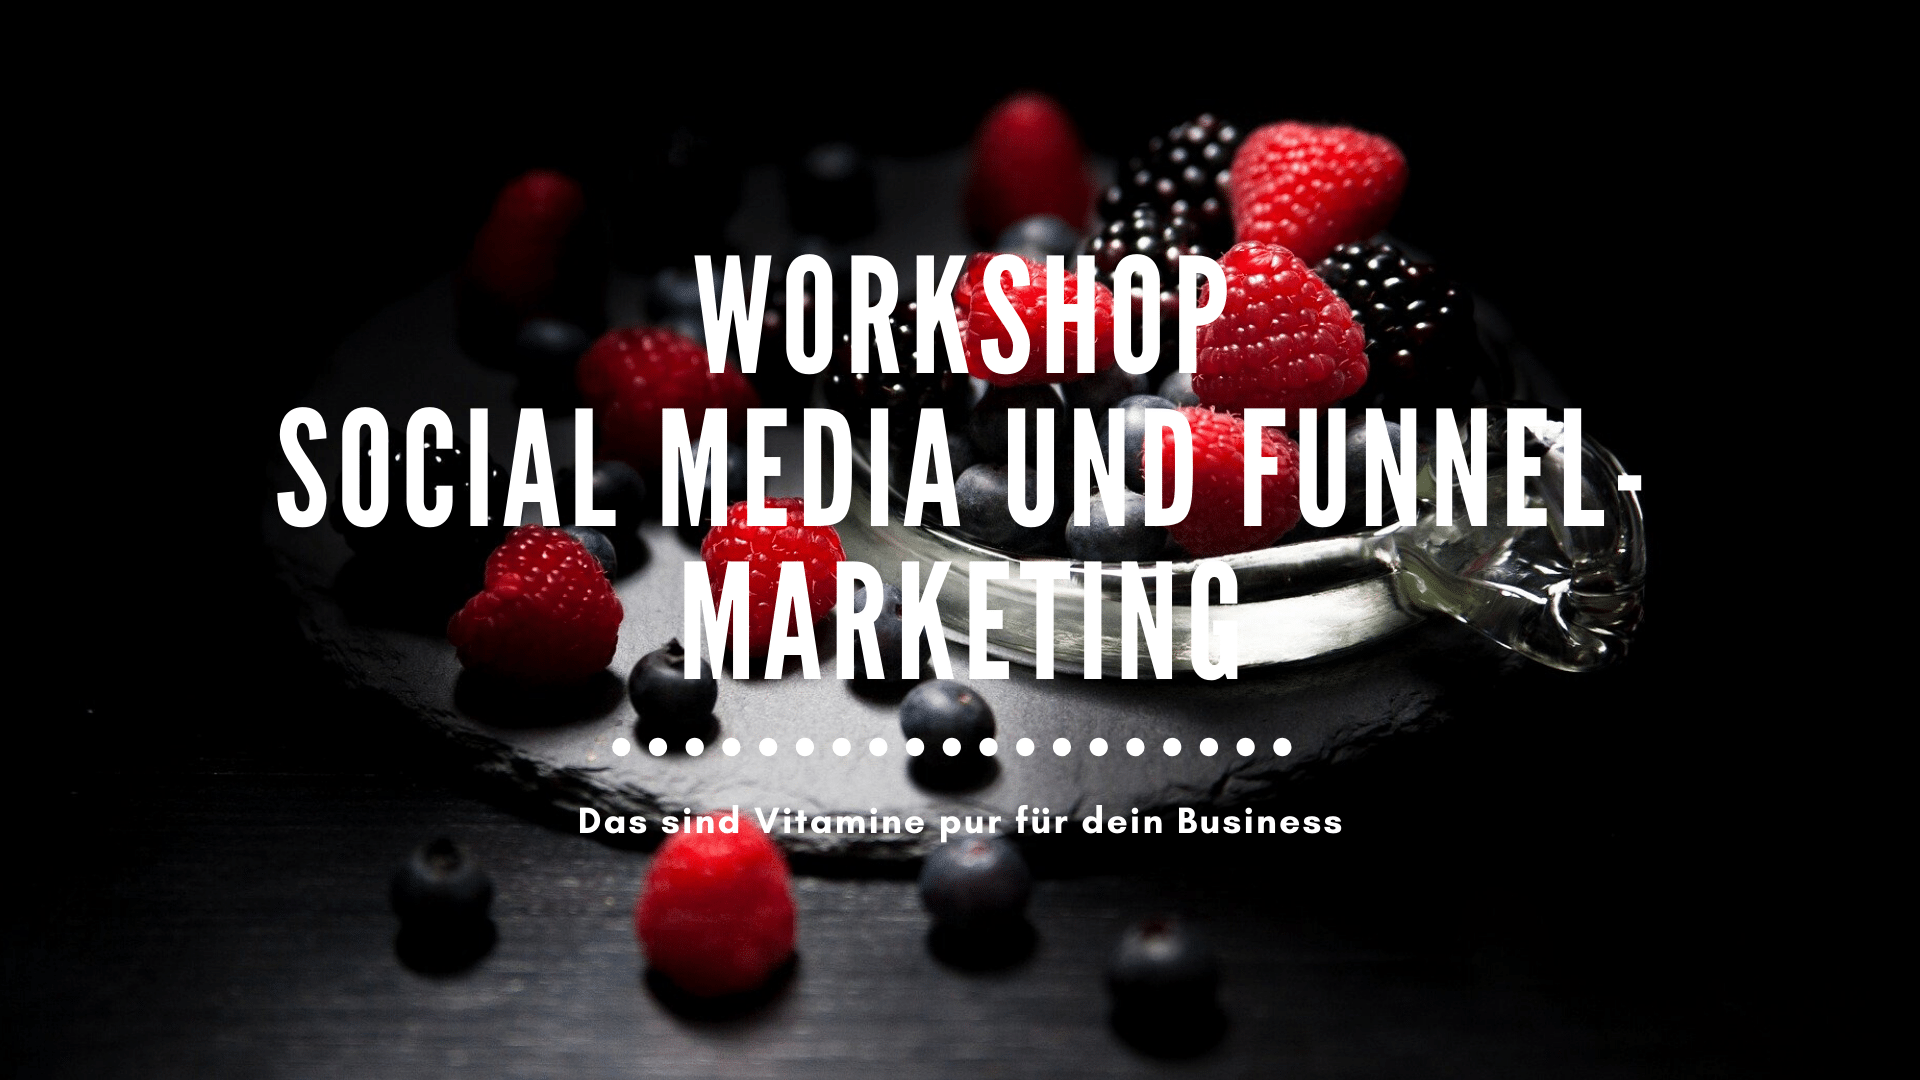 Workshop Social Media und Funnelmarketing